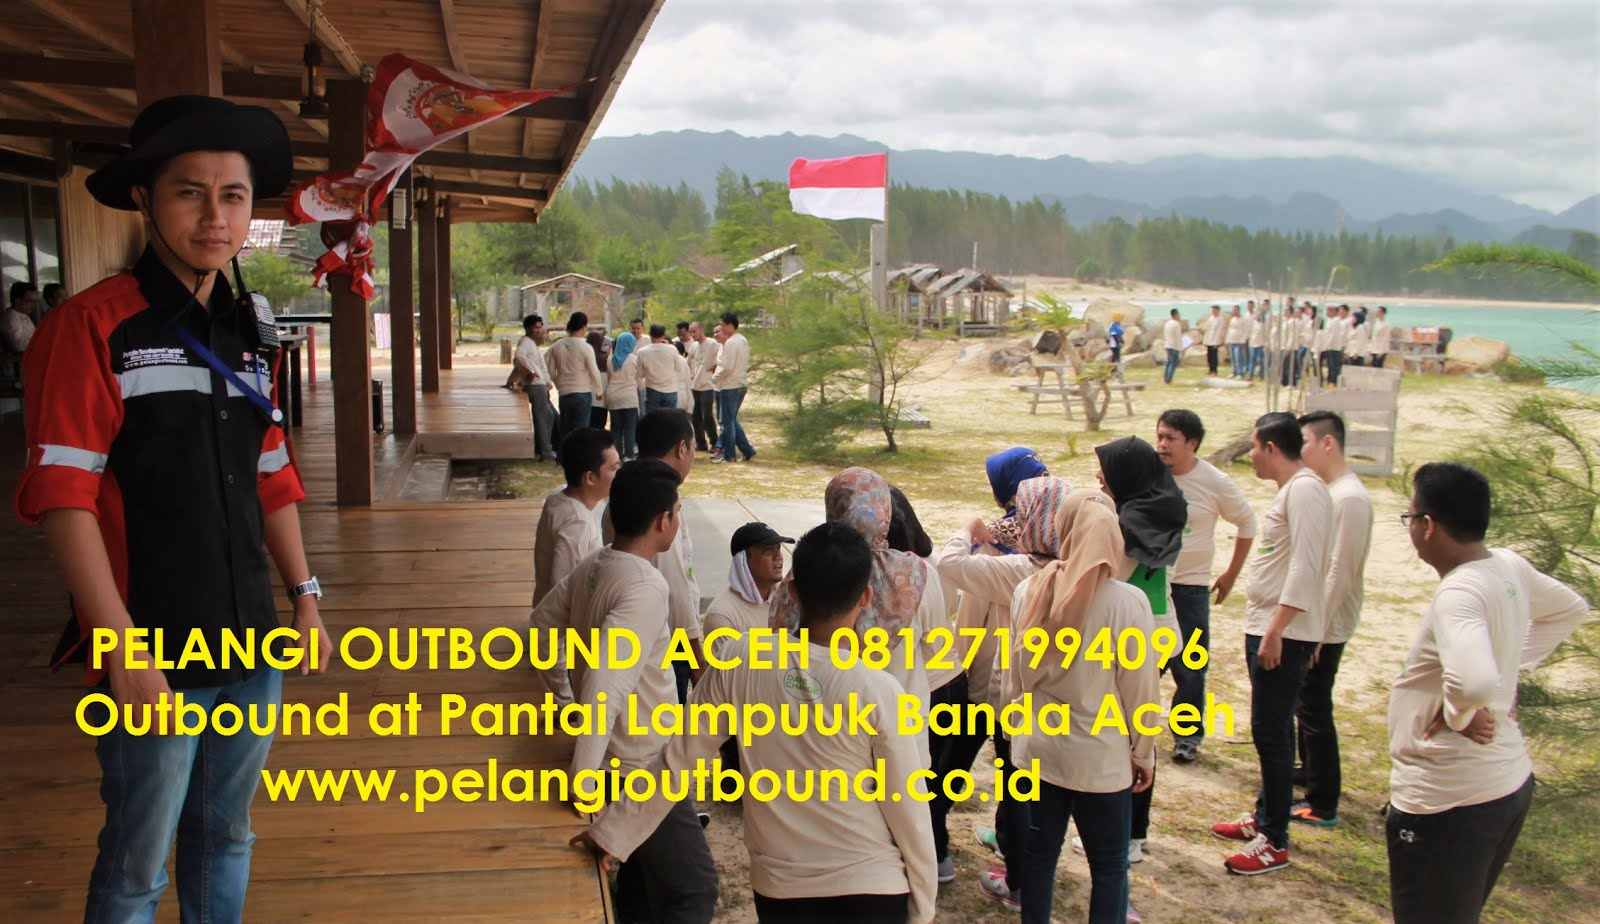 PELANGI OUTBOUND - 081271994096 I OUTBOUND di ACEH